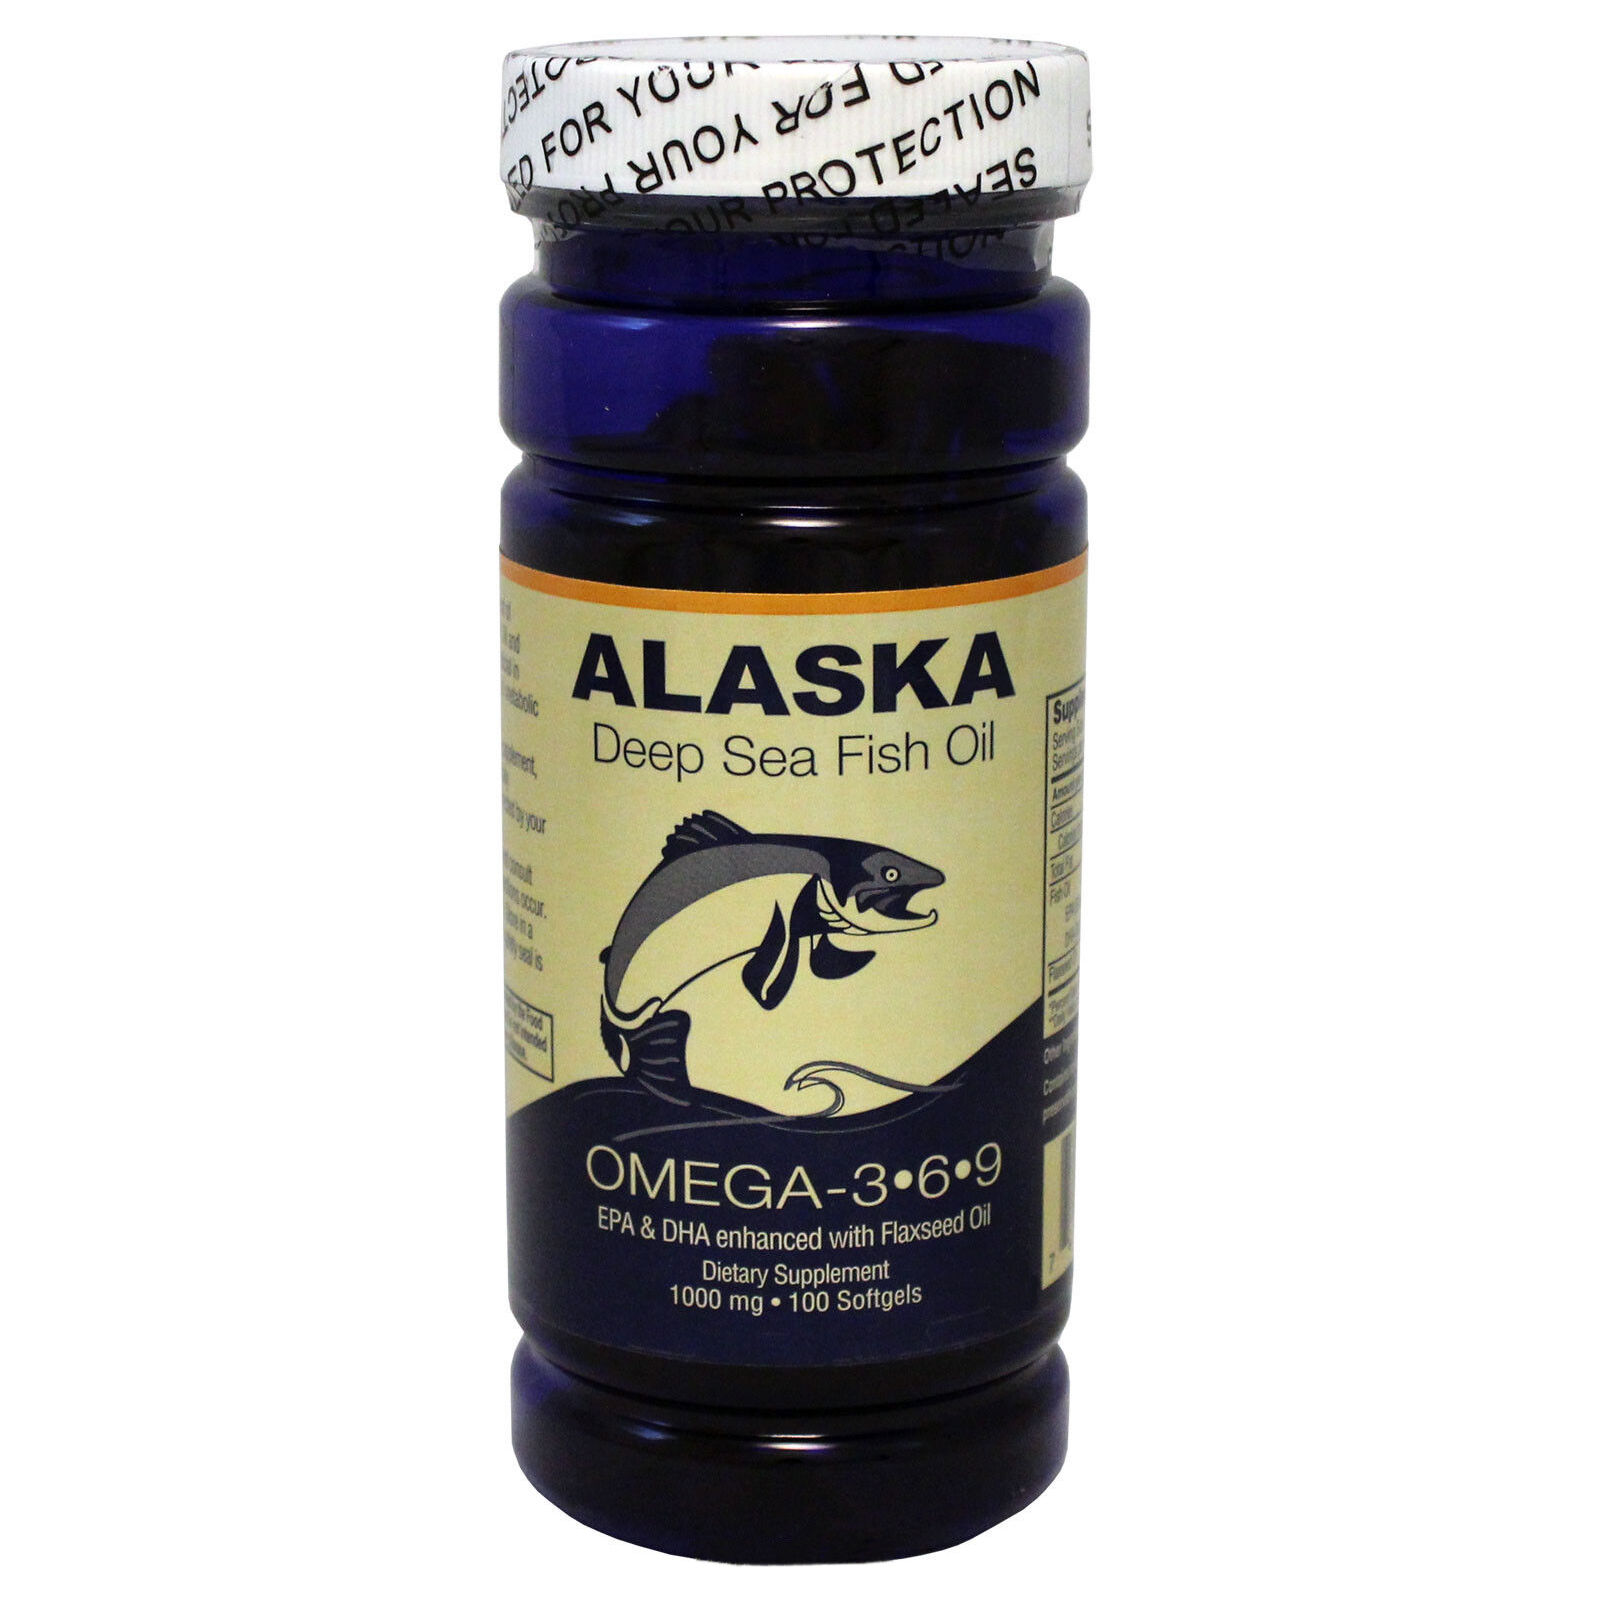 Alaska deep sea fish oil omega 3 6 9 epa dha flaxseed oil for Alaska deep sea fish oil